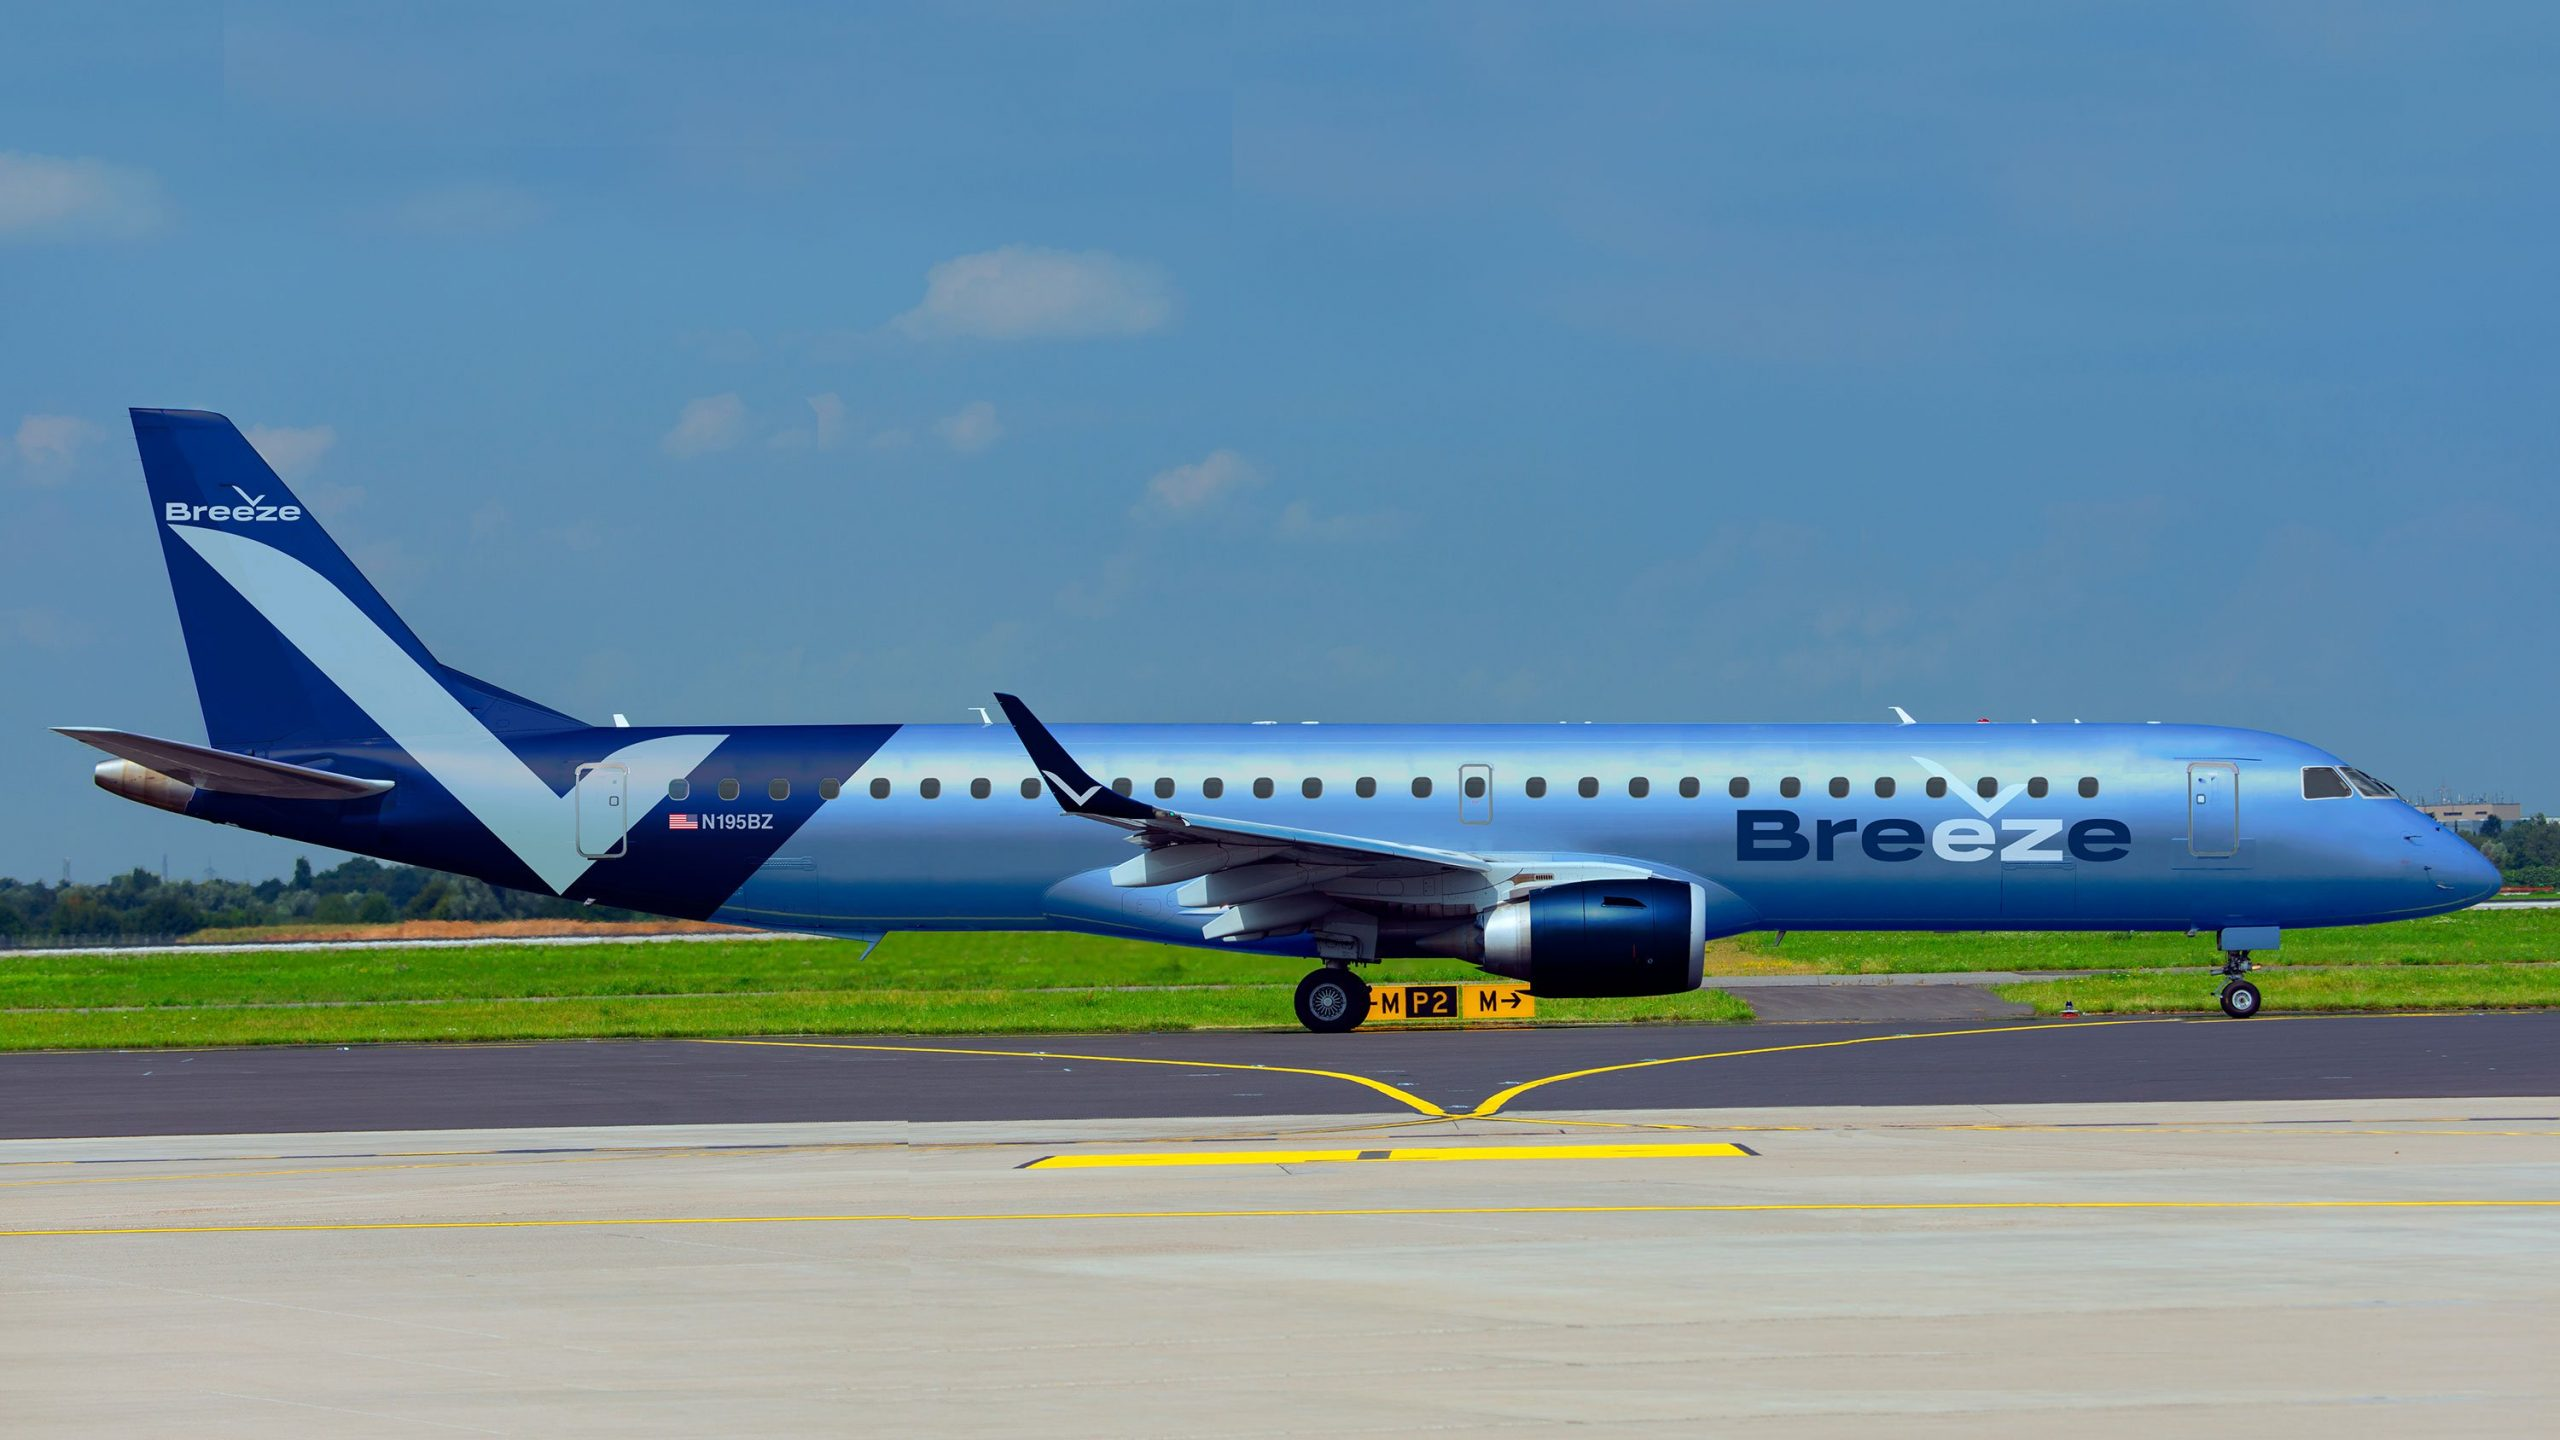 An aircraft with Breeze Airways, an airline started by the founder of JetBlue and expected to debut in 2020, appears in this photo. (Credit: Breeze Airways via CNN)